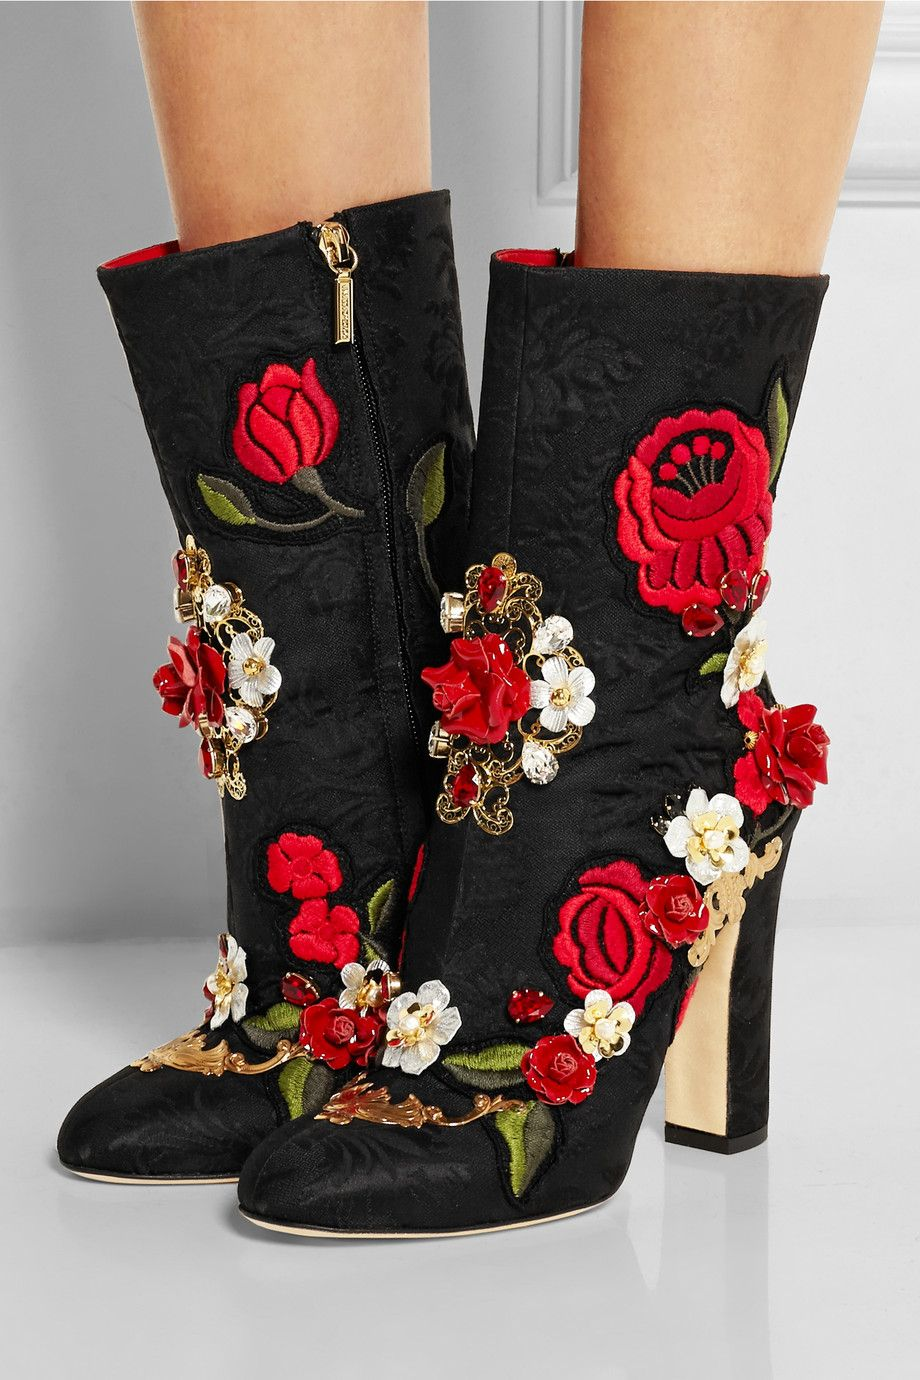 Dolce & GabbanaEmbellished brocade boots